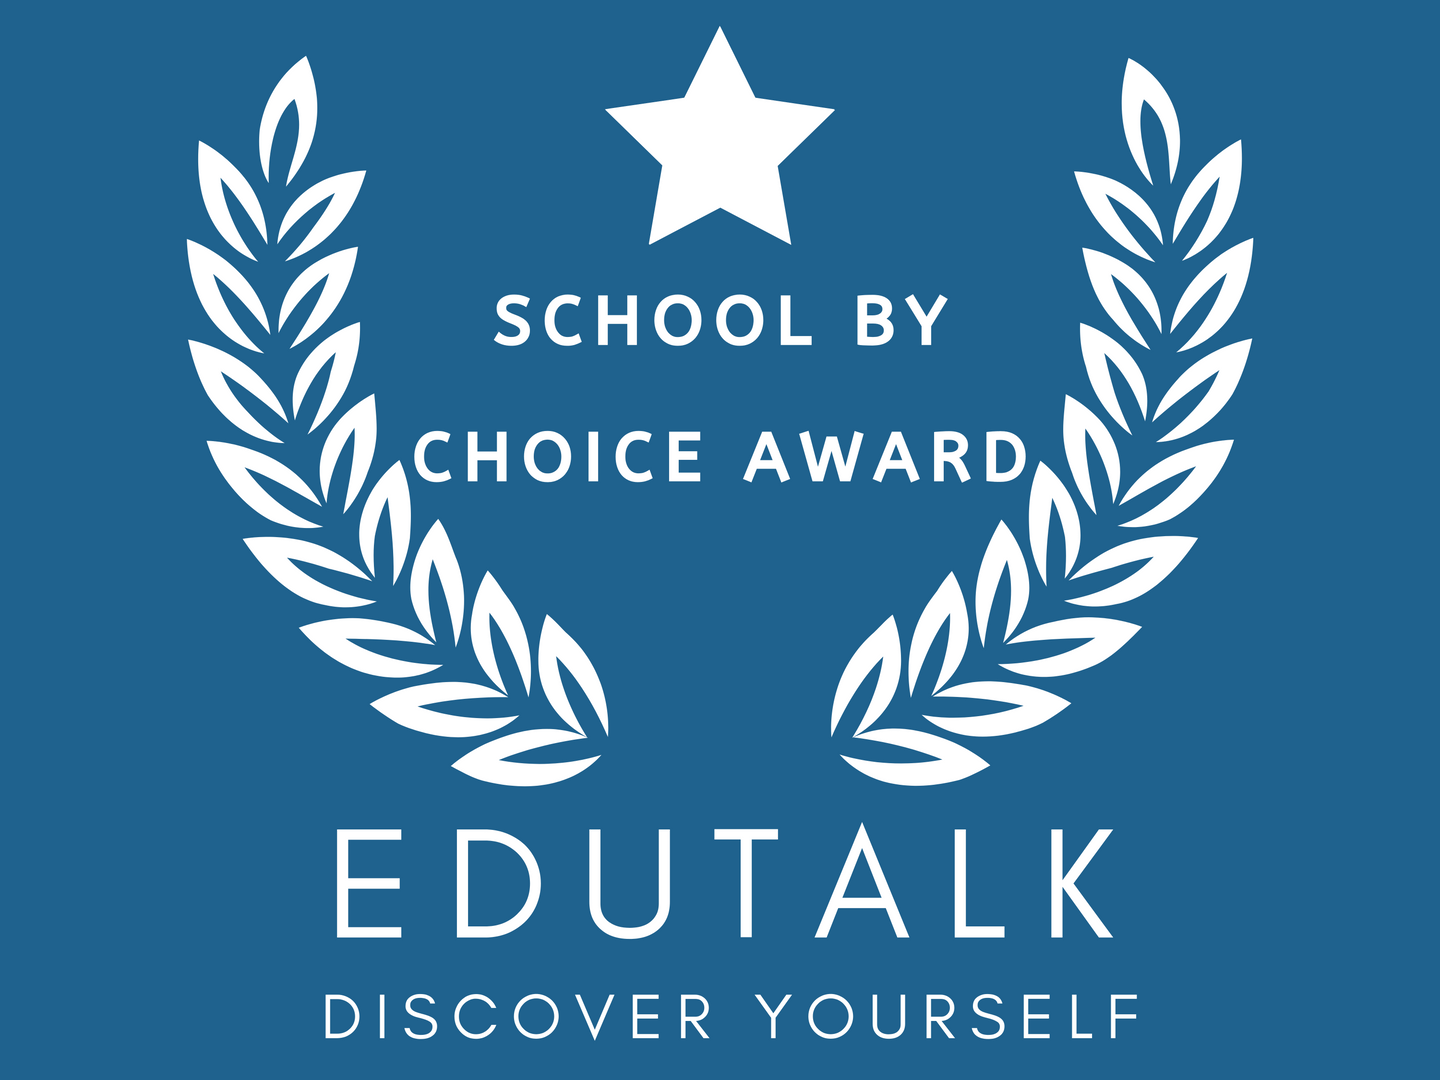 School By Choice Award